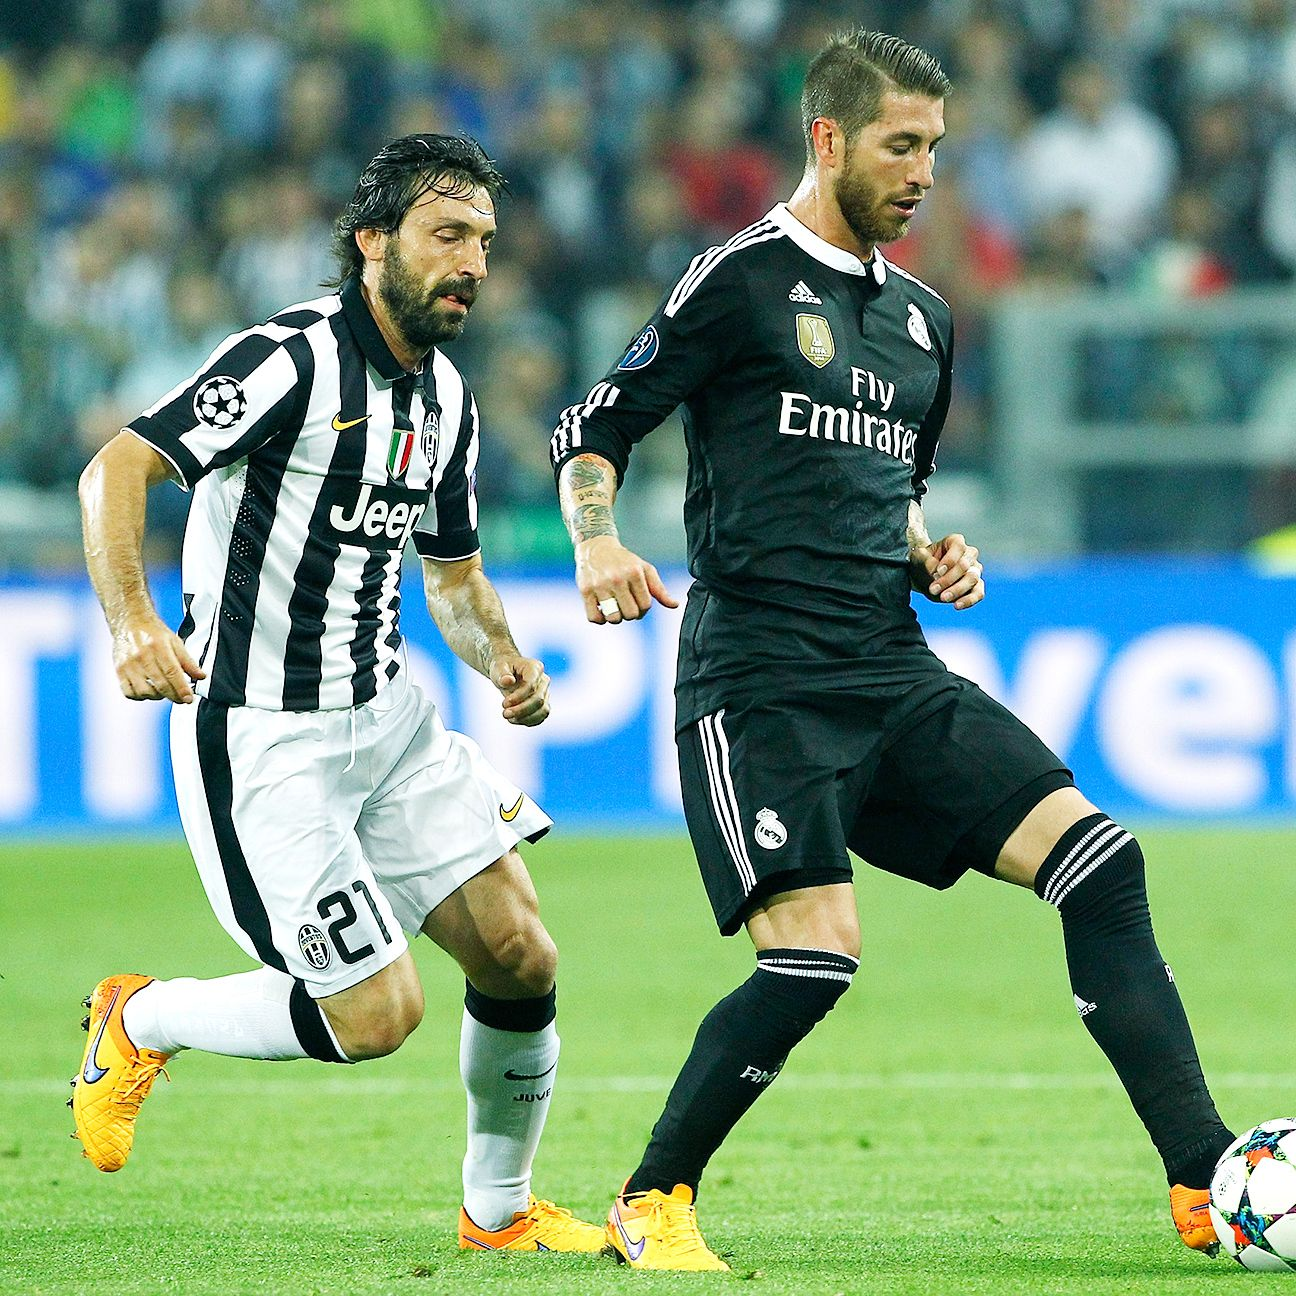 Sergio Ramos was never comfortable over the ball playing in Real's midfield on Tuesday.